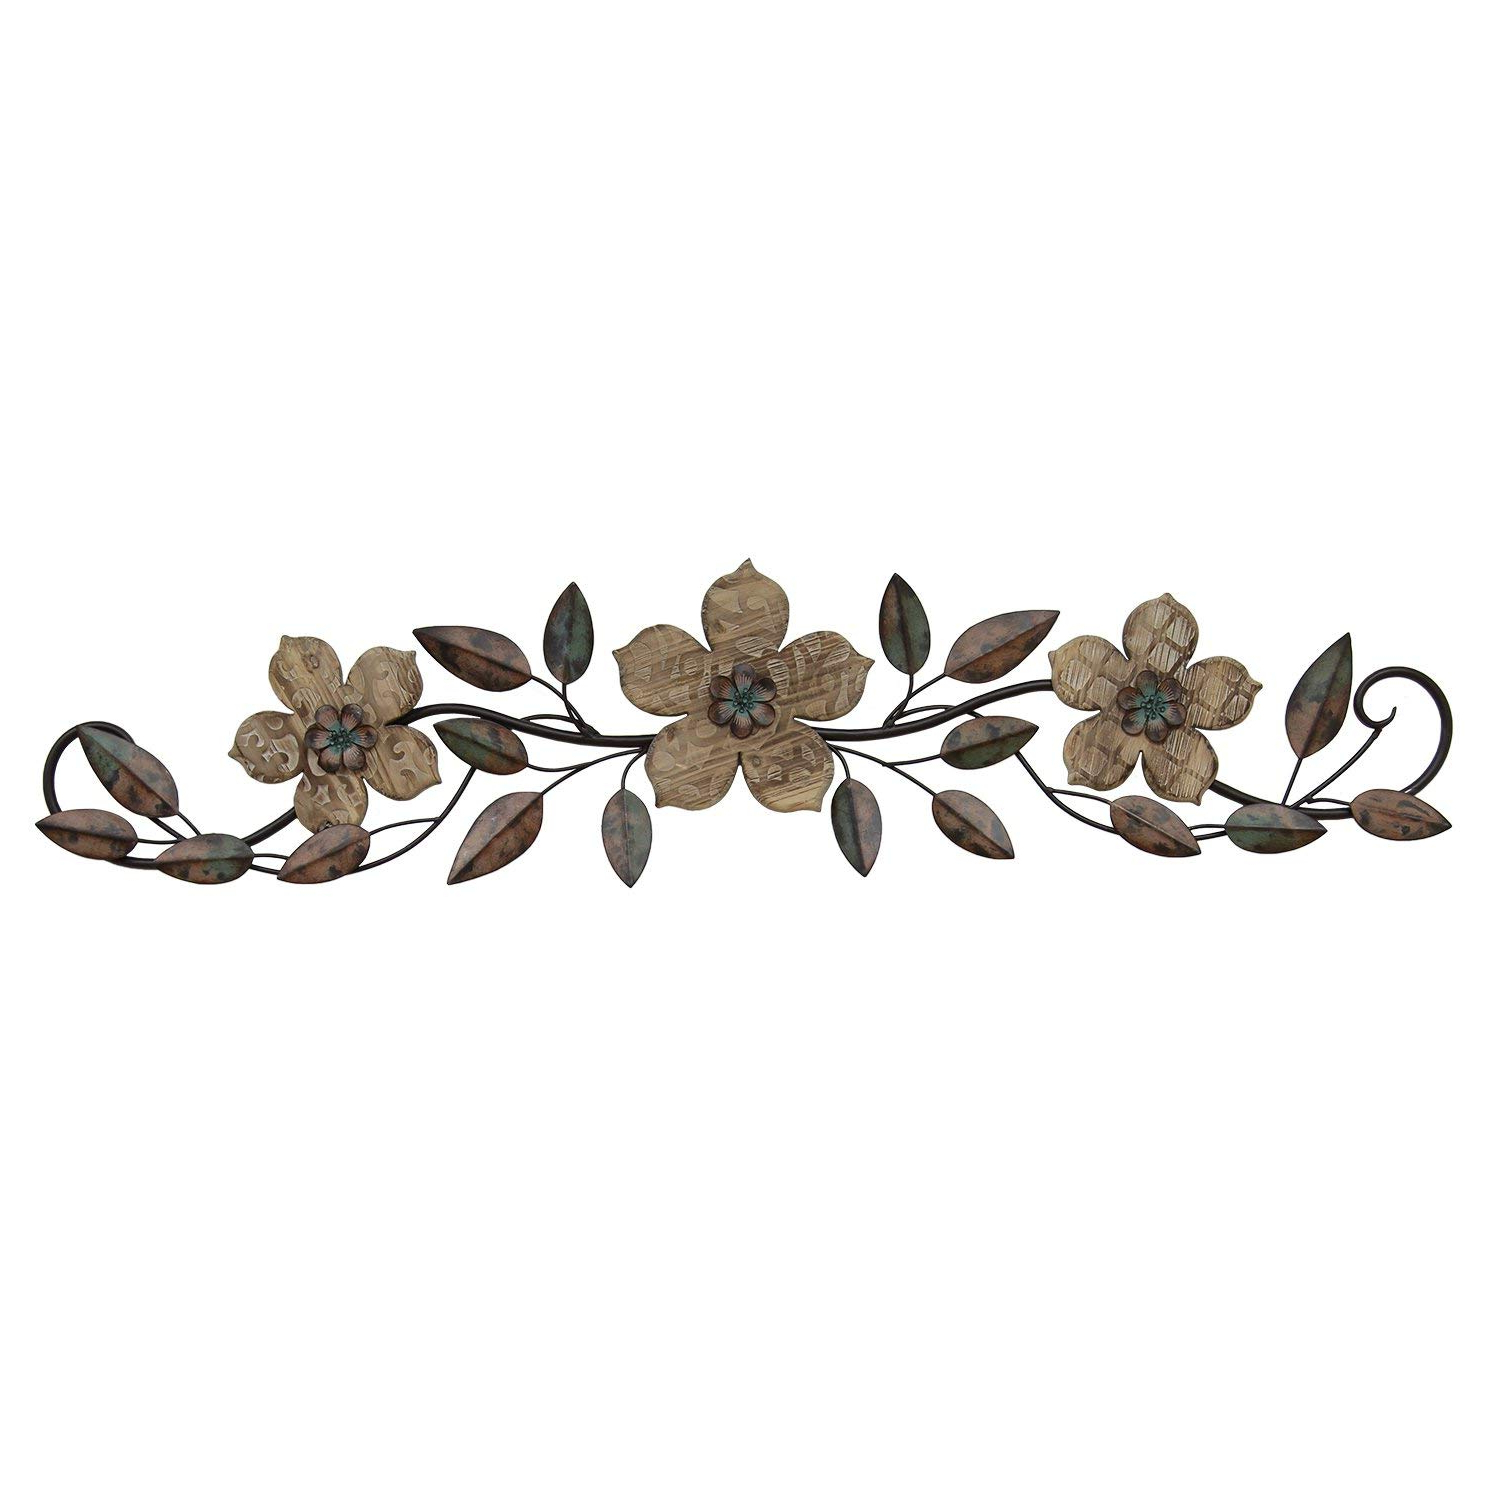 Well Known Floral Patterned Over The Door Wall Decor Within Amazon: Stratton Home Décor Stratton Home S01207 Floral (View 19 of 20)